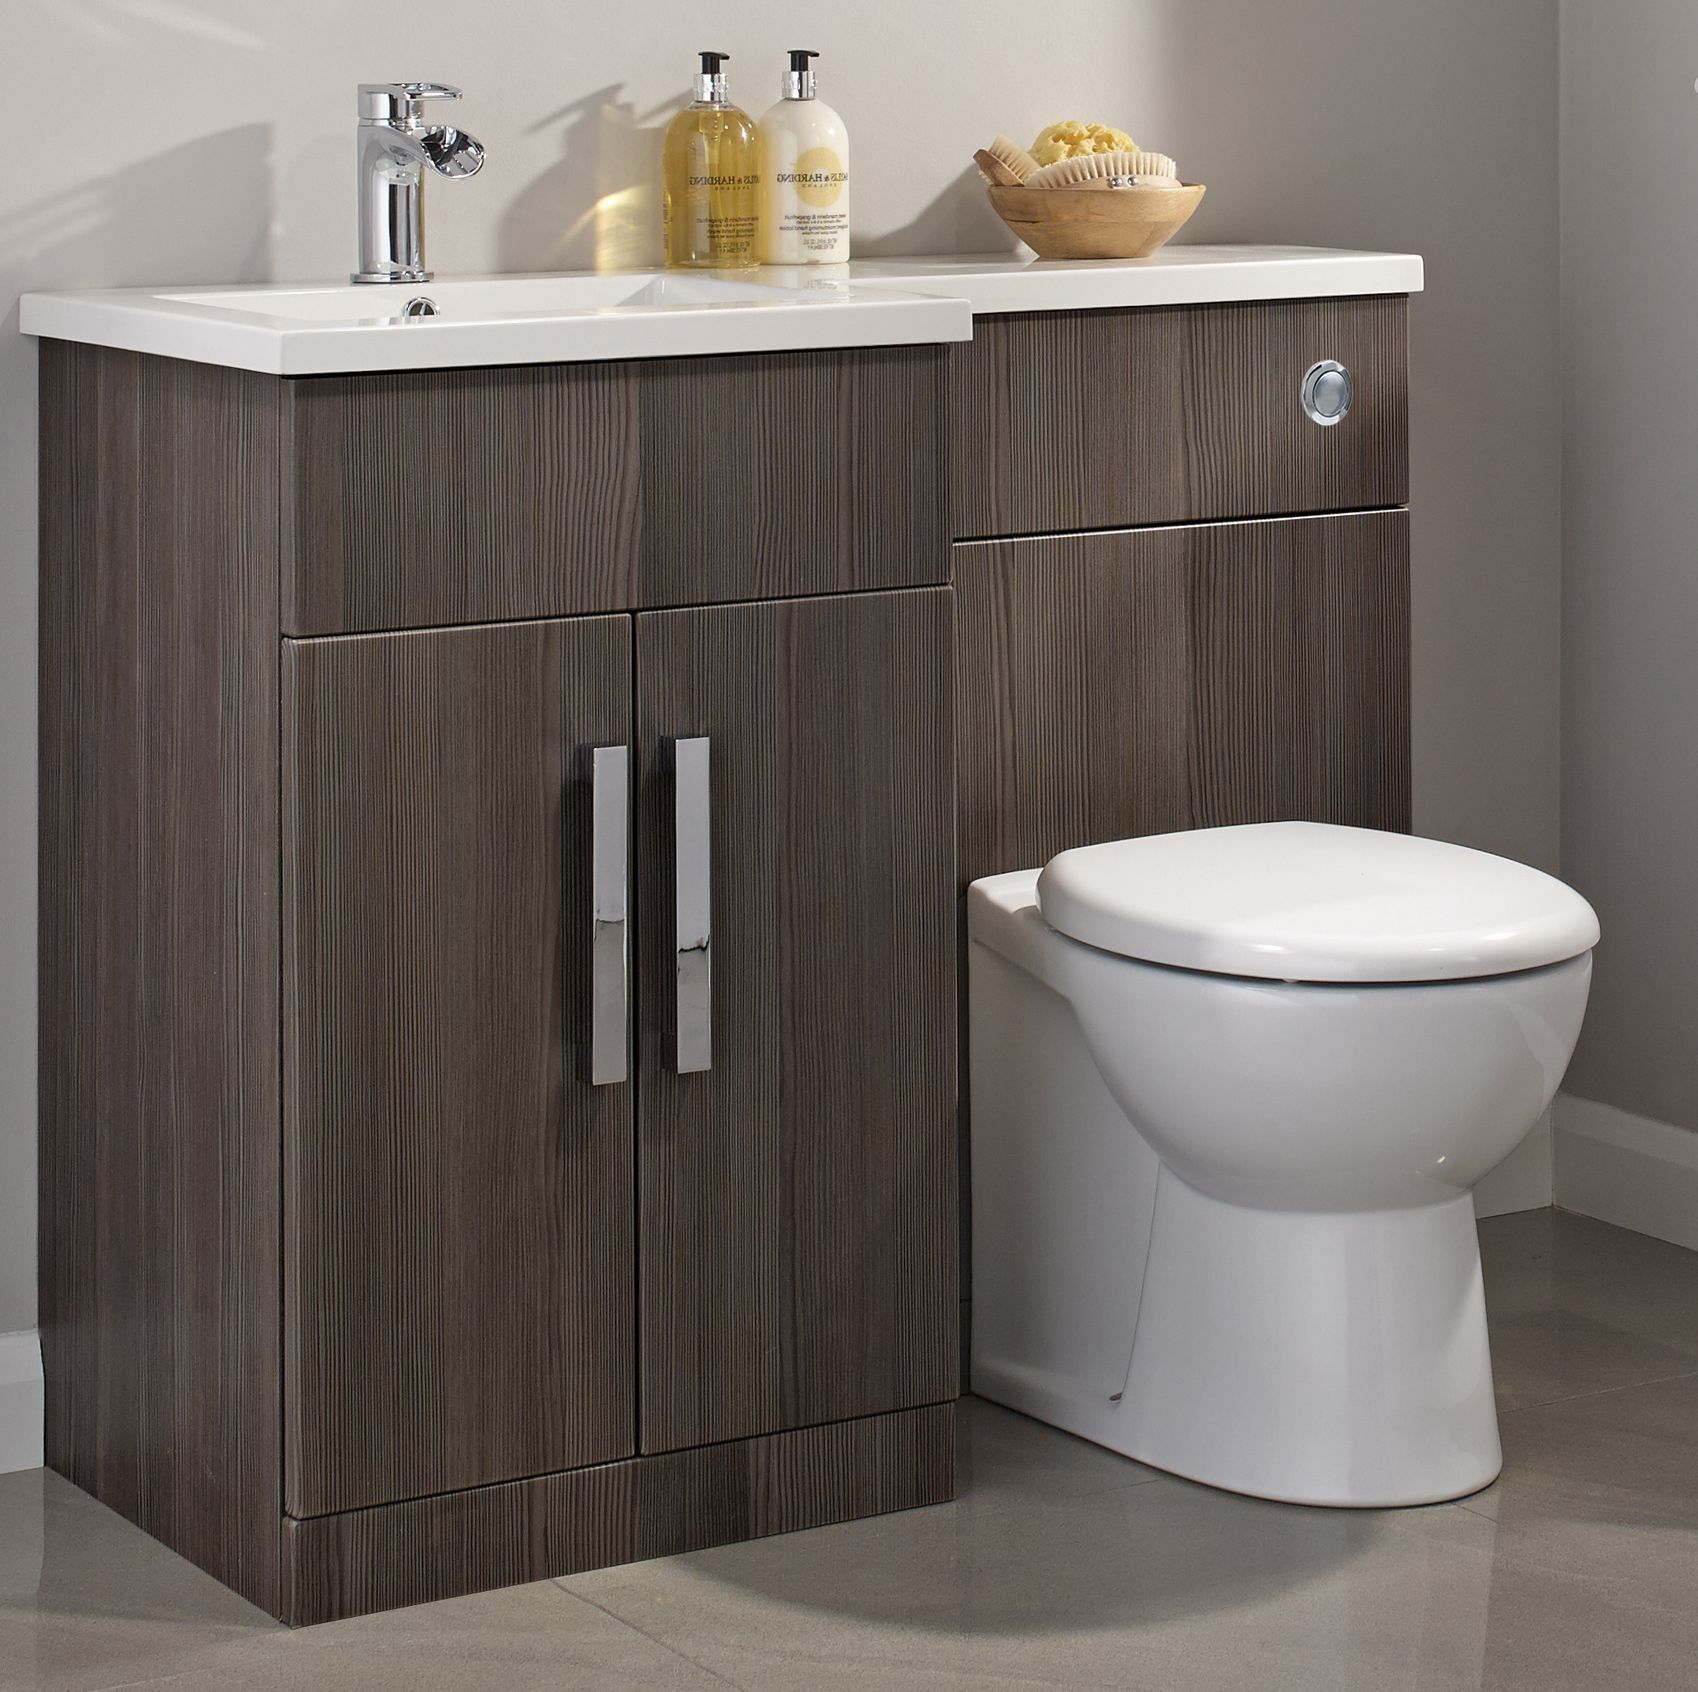 Cooke lewis ardesio bodega grey lh vanity toilet pack for Grey bathroom cupboard